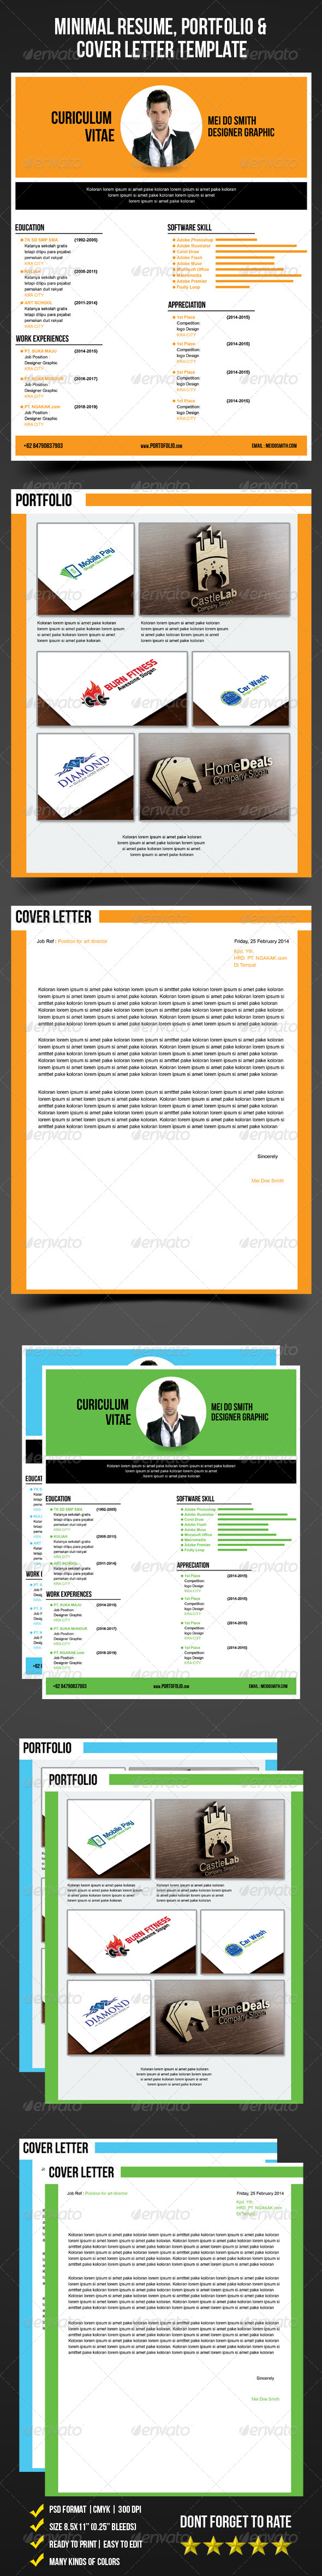 Minimal Resume, Portfolio & Cover Letter Template - Resumes Stationery